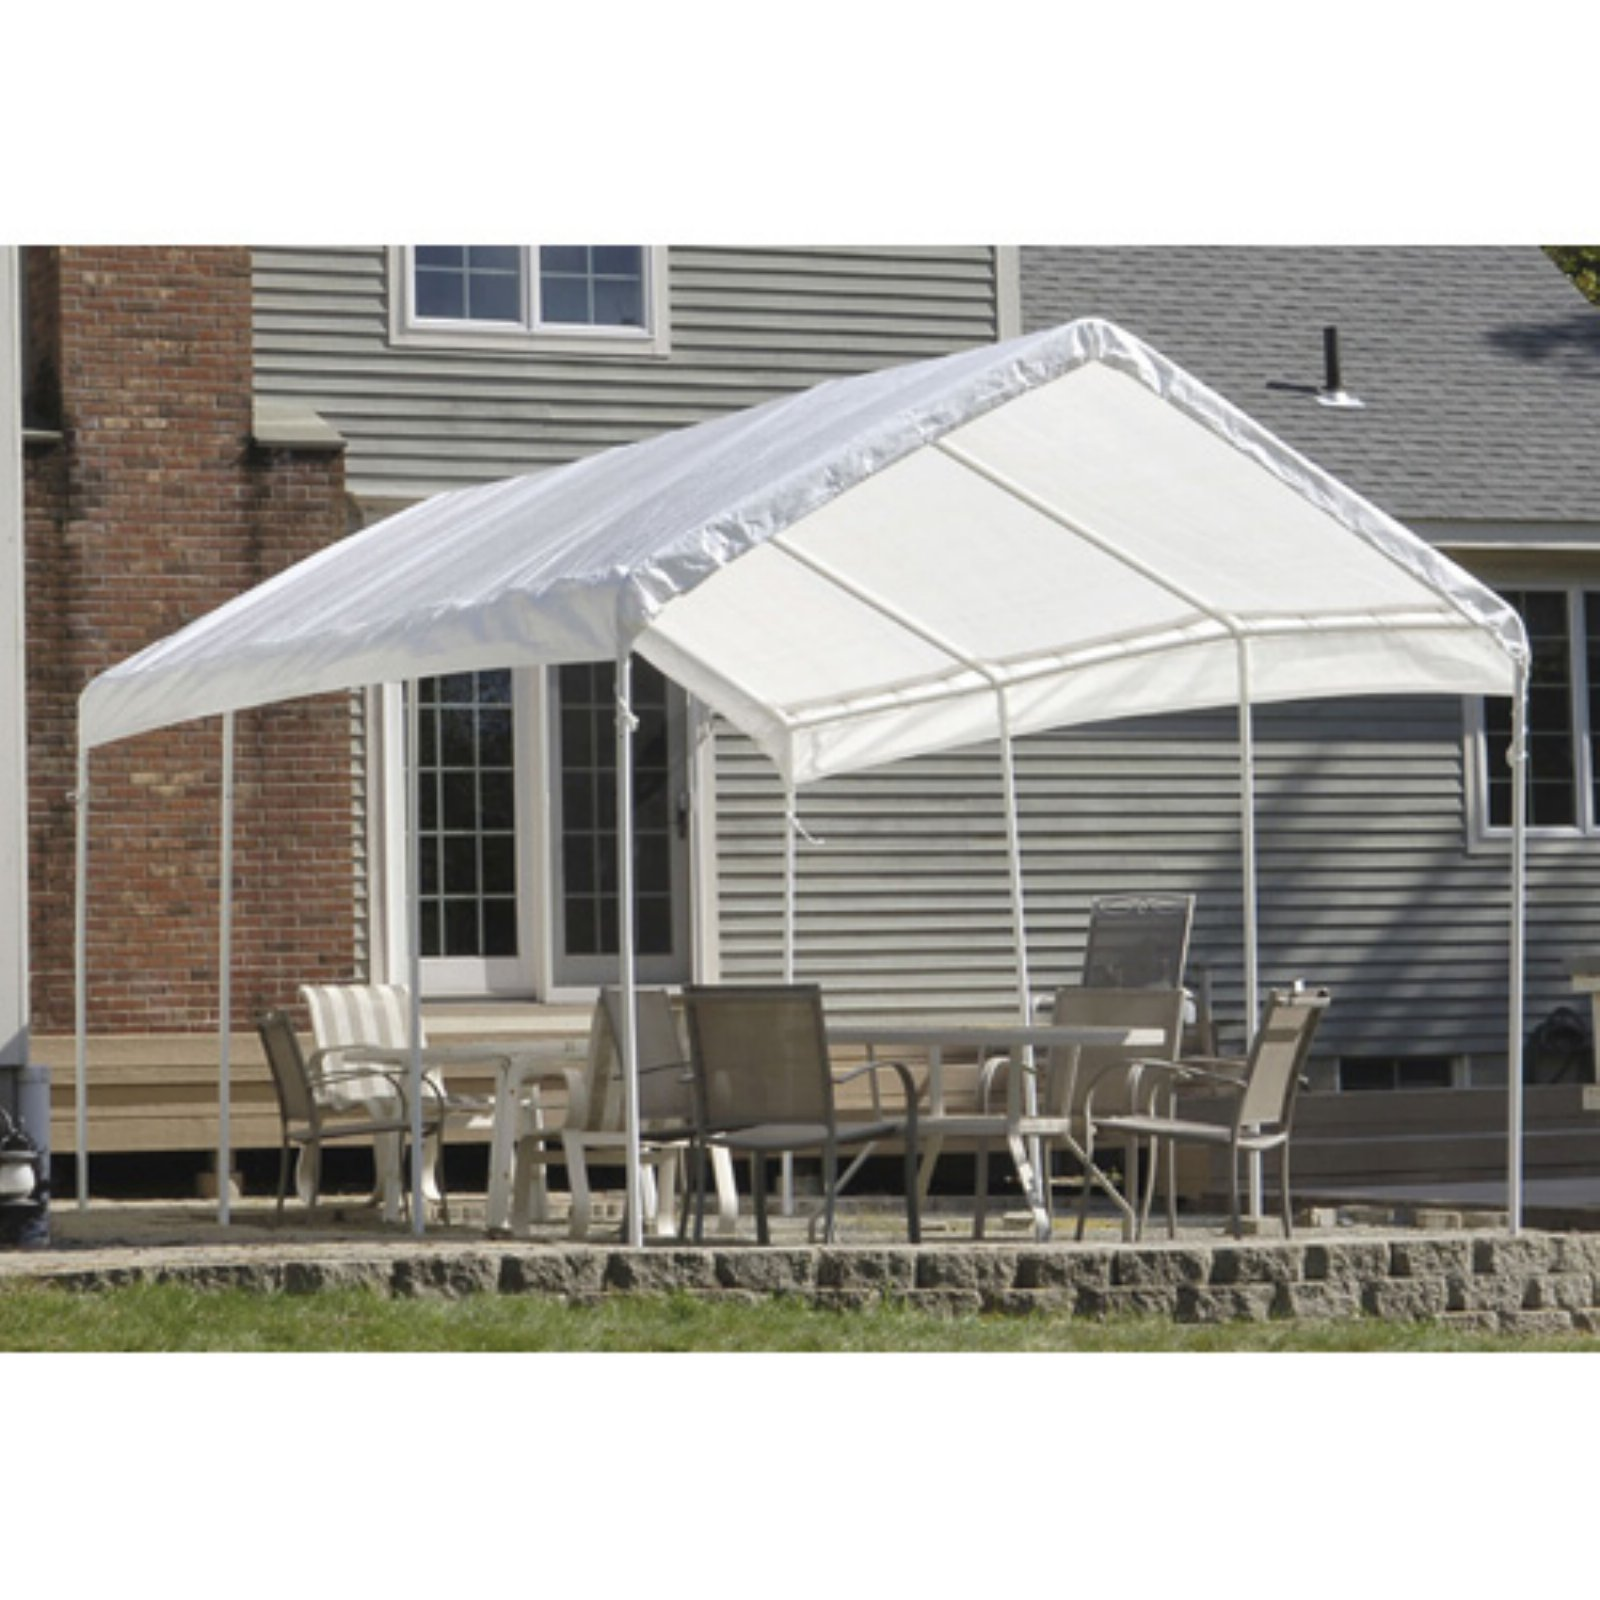 SuperMax 10u0027 x 20u0027 All Purpose Canopy Replacement Cover  sc 1 st  Walmart & SuperMax 10u0027 x 20u0027 All Purpose Canopy Replacement Cover - Walmart.com